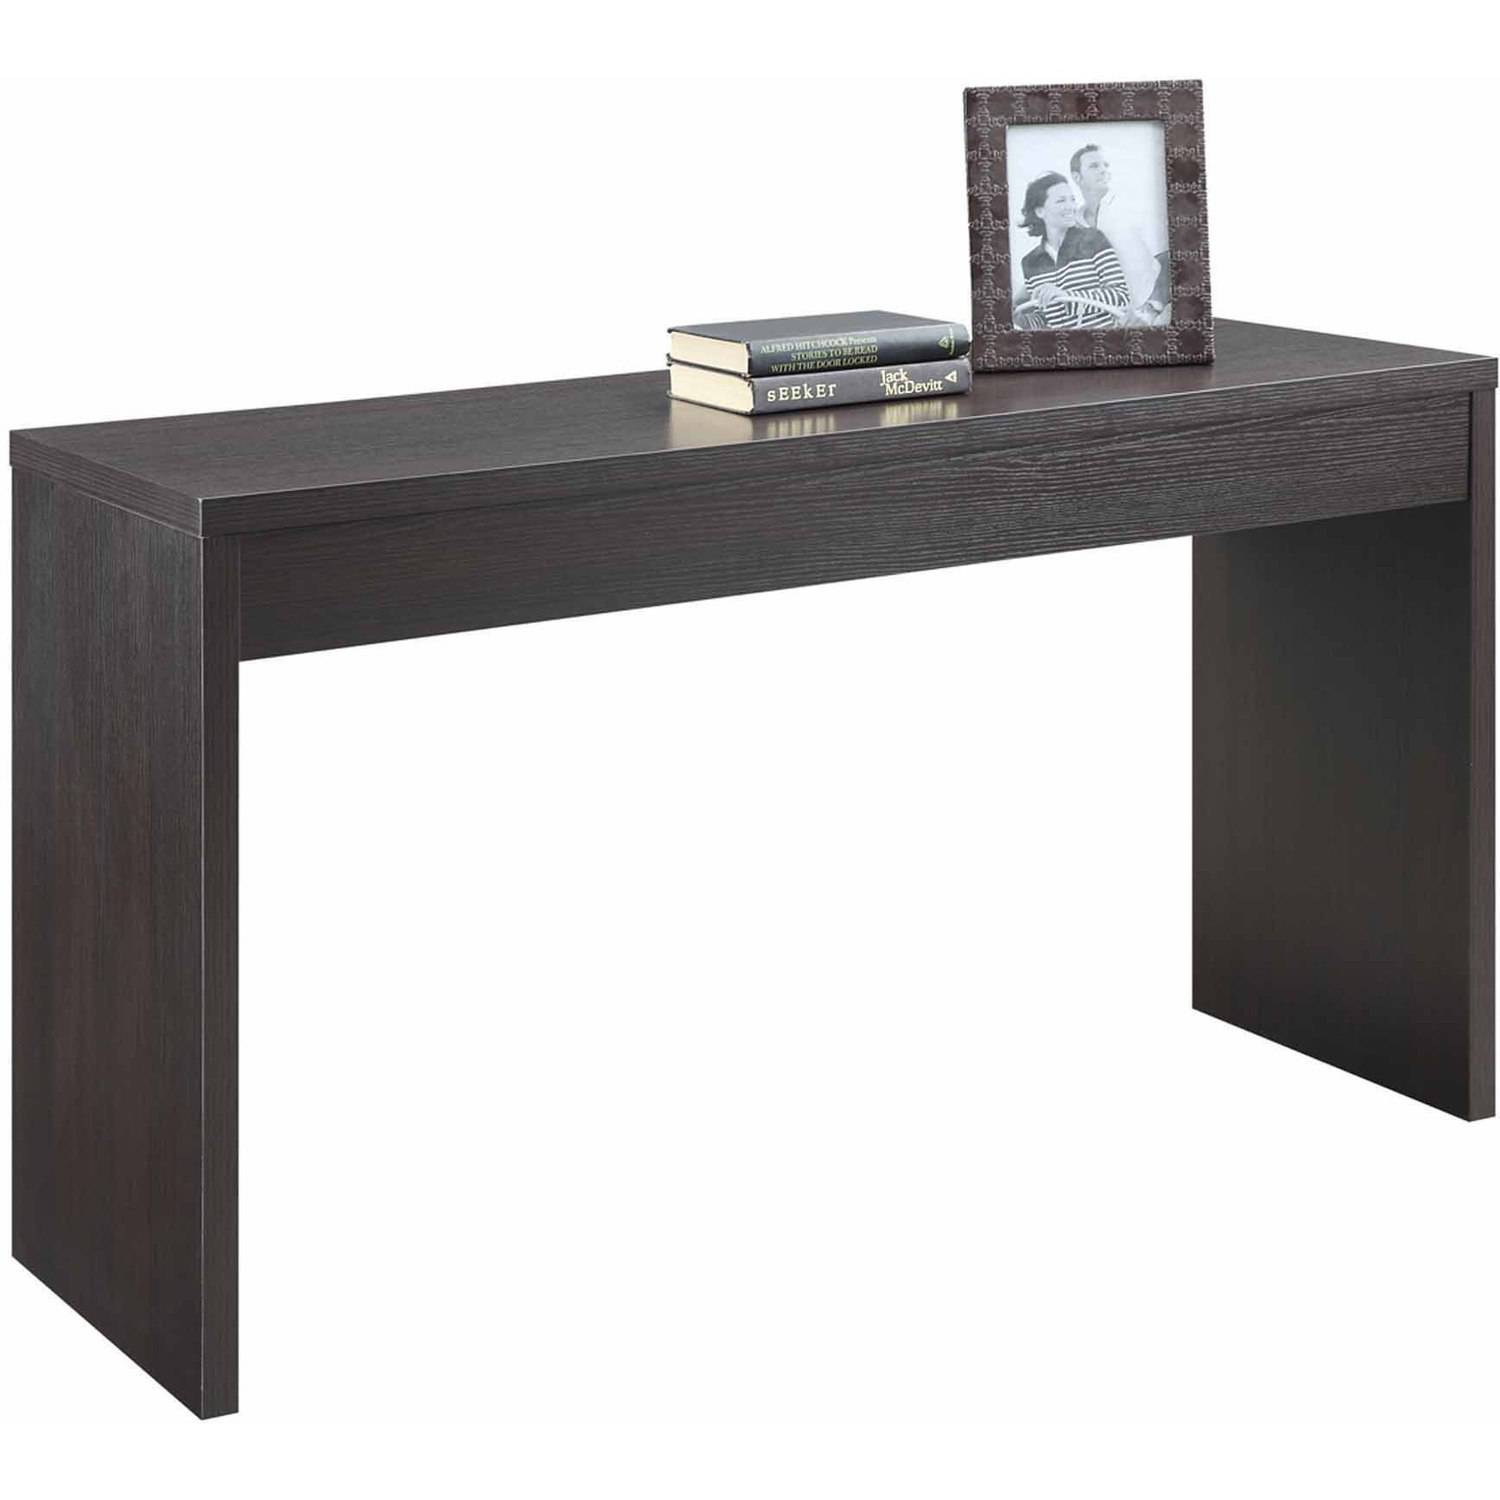 Convenience concepts northfield hallway console table mutilple convenience concepts northfield hallway console table mutilple colors geotapseo Gallery